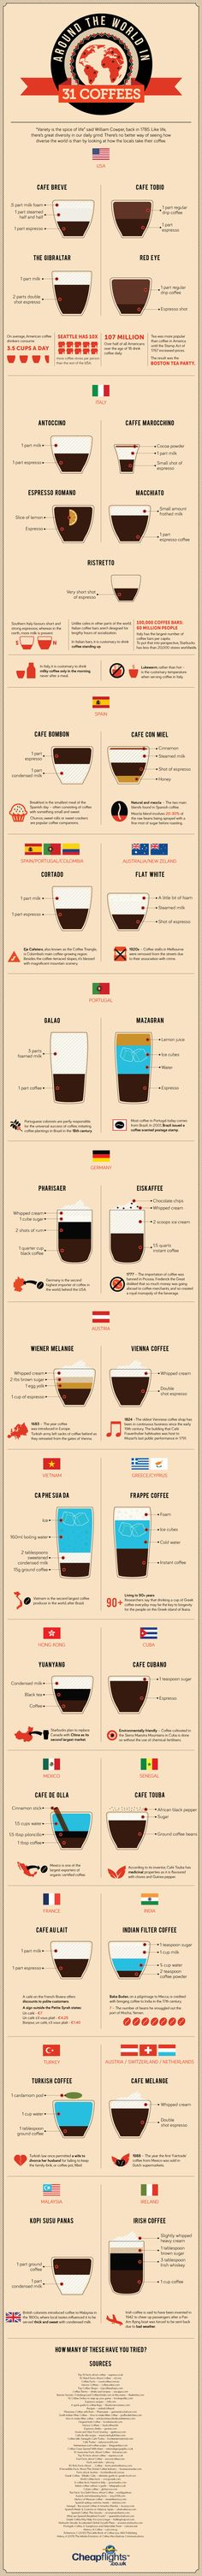 COFFEE CONNOISSEUR | Around The World in 31 Coffees infographic - To see the full post visit http://www.backtobuckley.com/coffee-connoisseur-around-the-world-in-31-coffees/  Reshared via http://coffeeandbean.com  a coffee periodical.